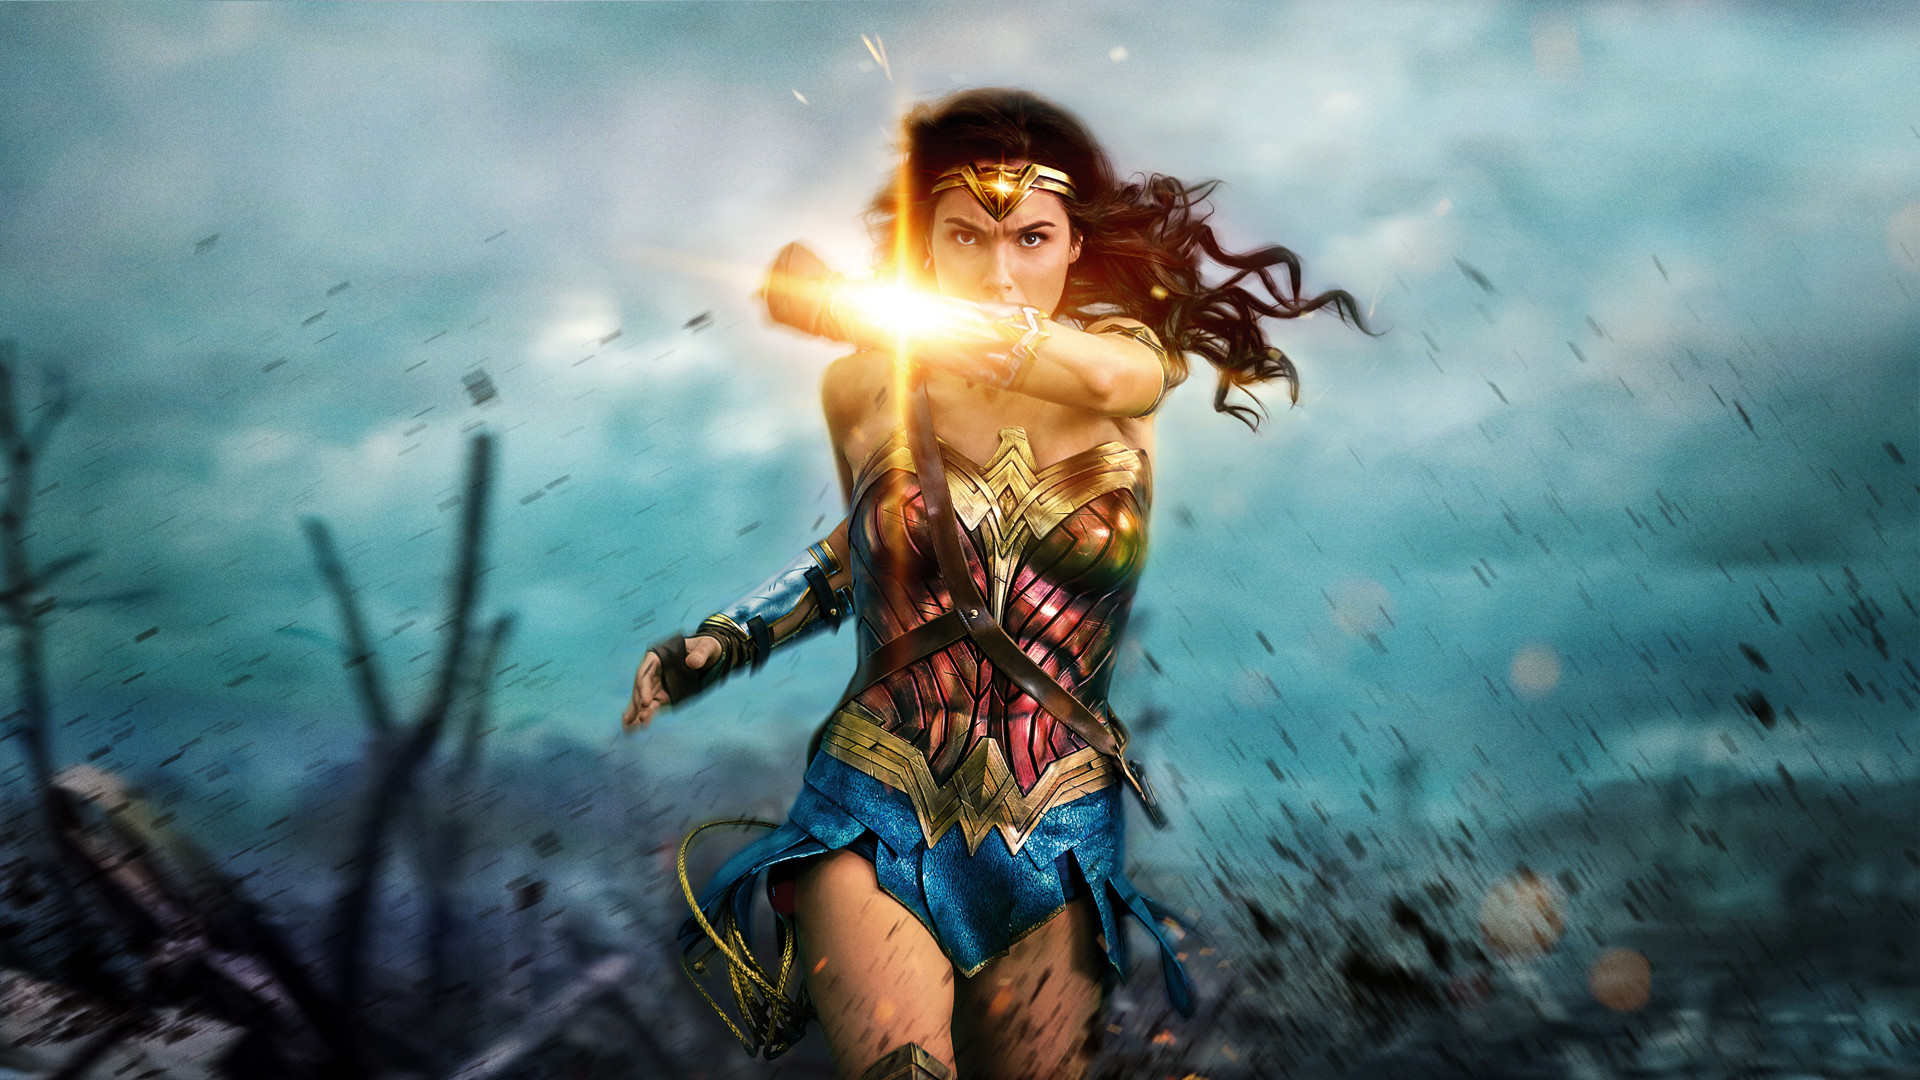 Wallpaper Wonder Woman Hd 4k 8k Movies 9526: Wonderwoman Wallpaper (69+ Images